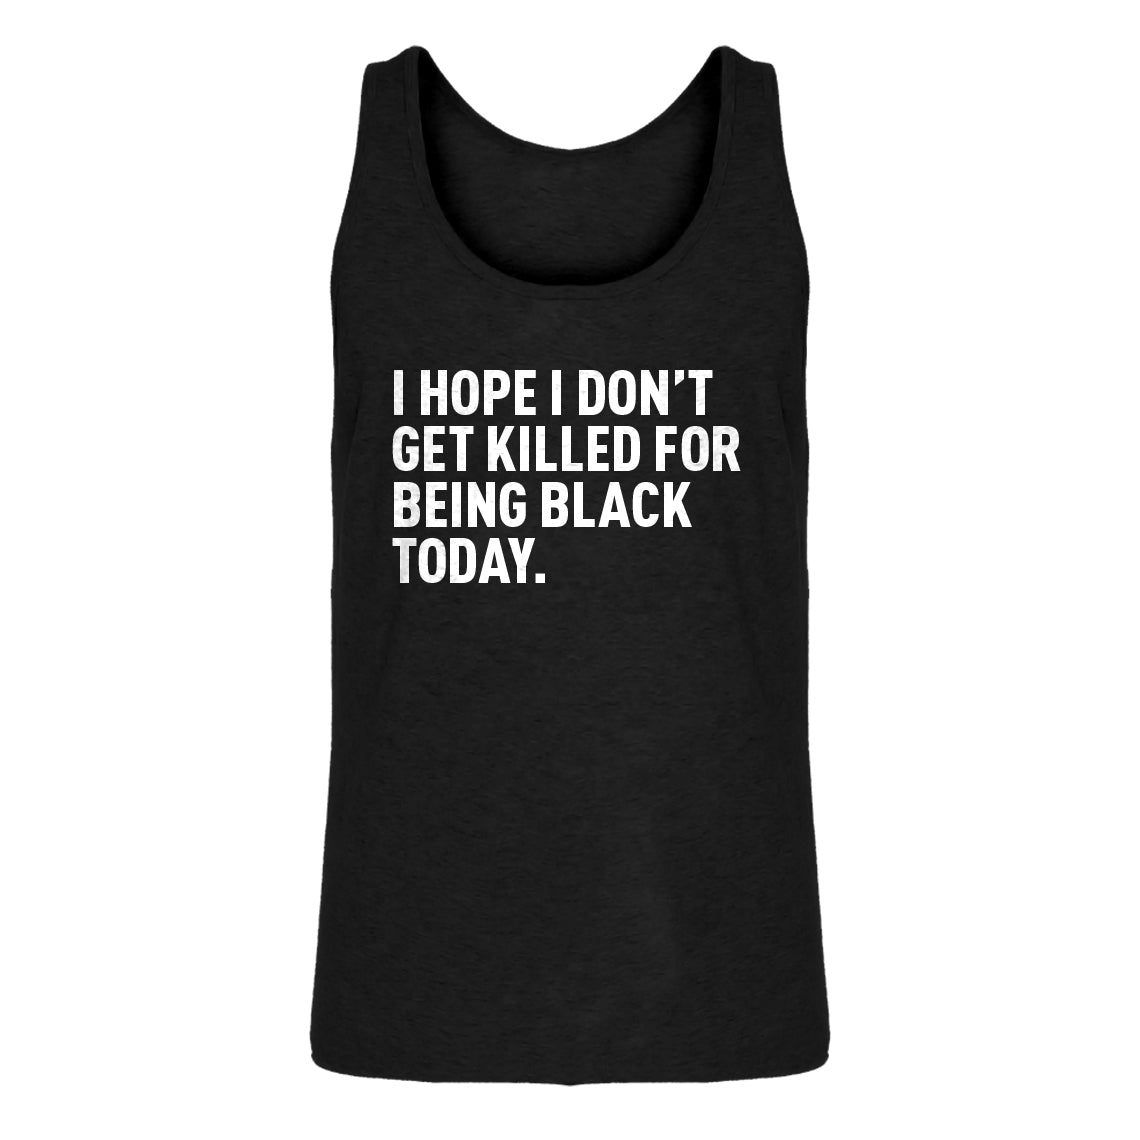 Mens I Hope I Don't Get Killed for Being Black Today. Jersey Tank Top